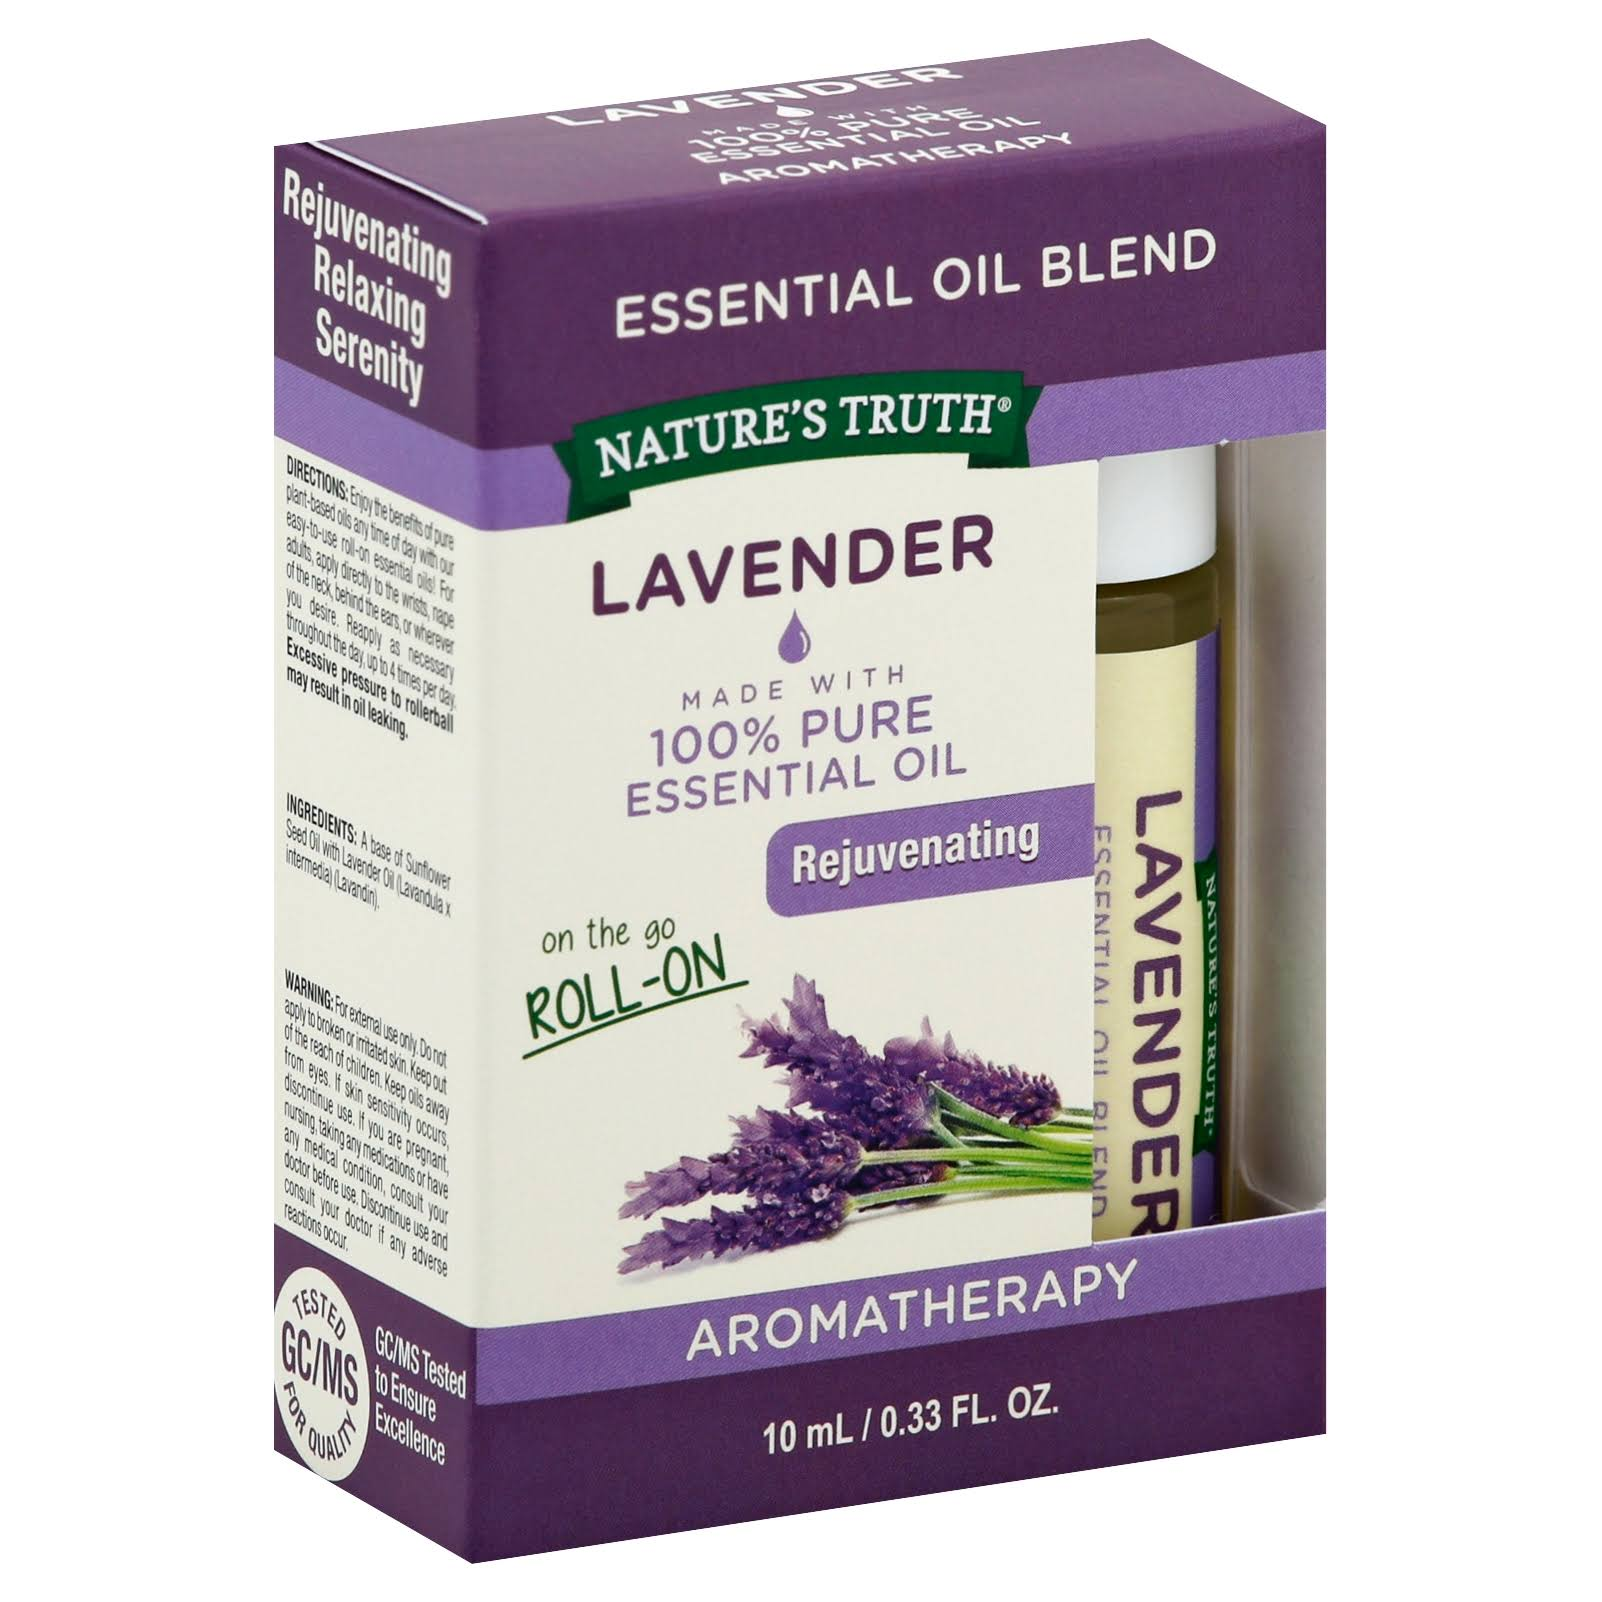 Natures Truth Lavender Essential Oil Roll On Blend - 10ml